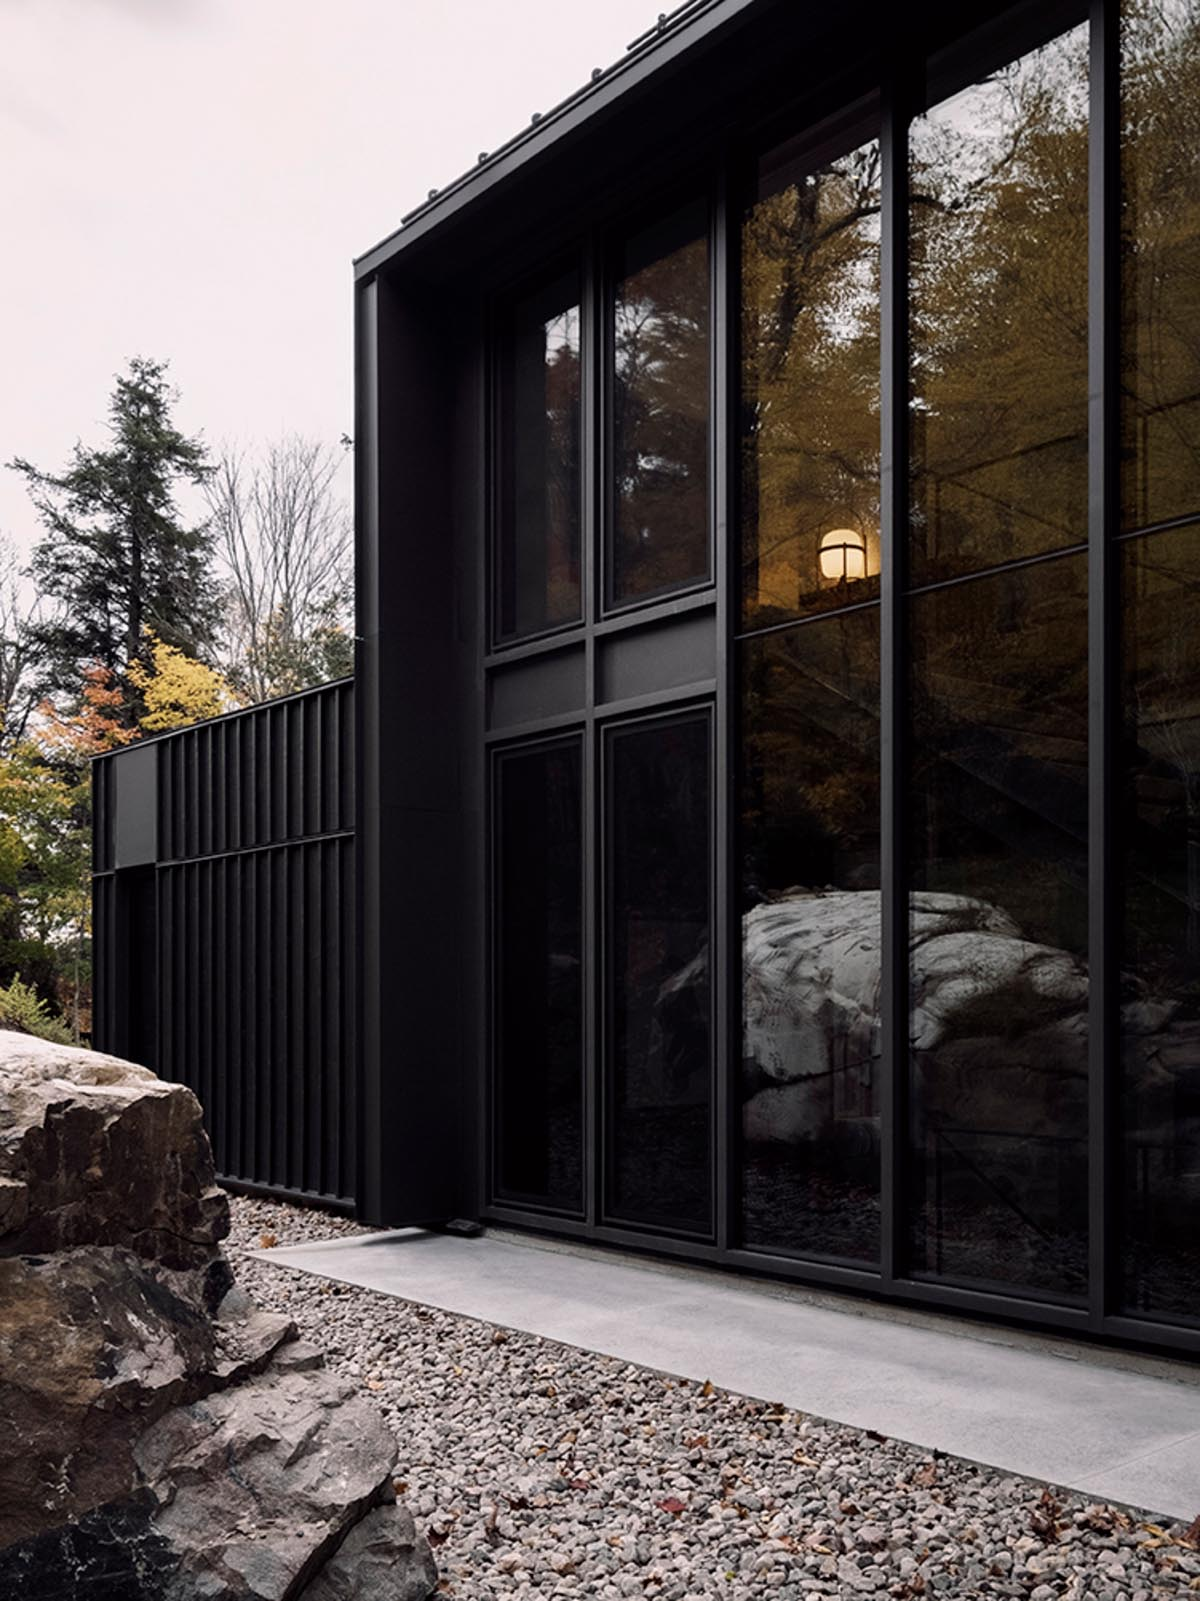 A modern house with black siding and black window frames.